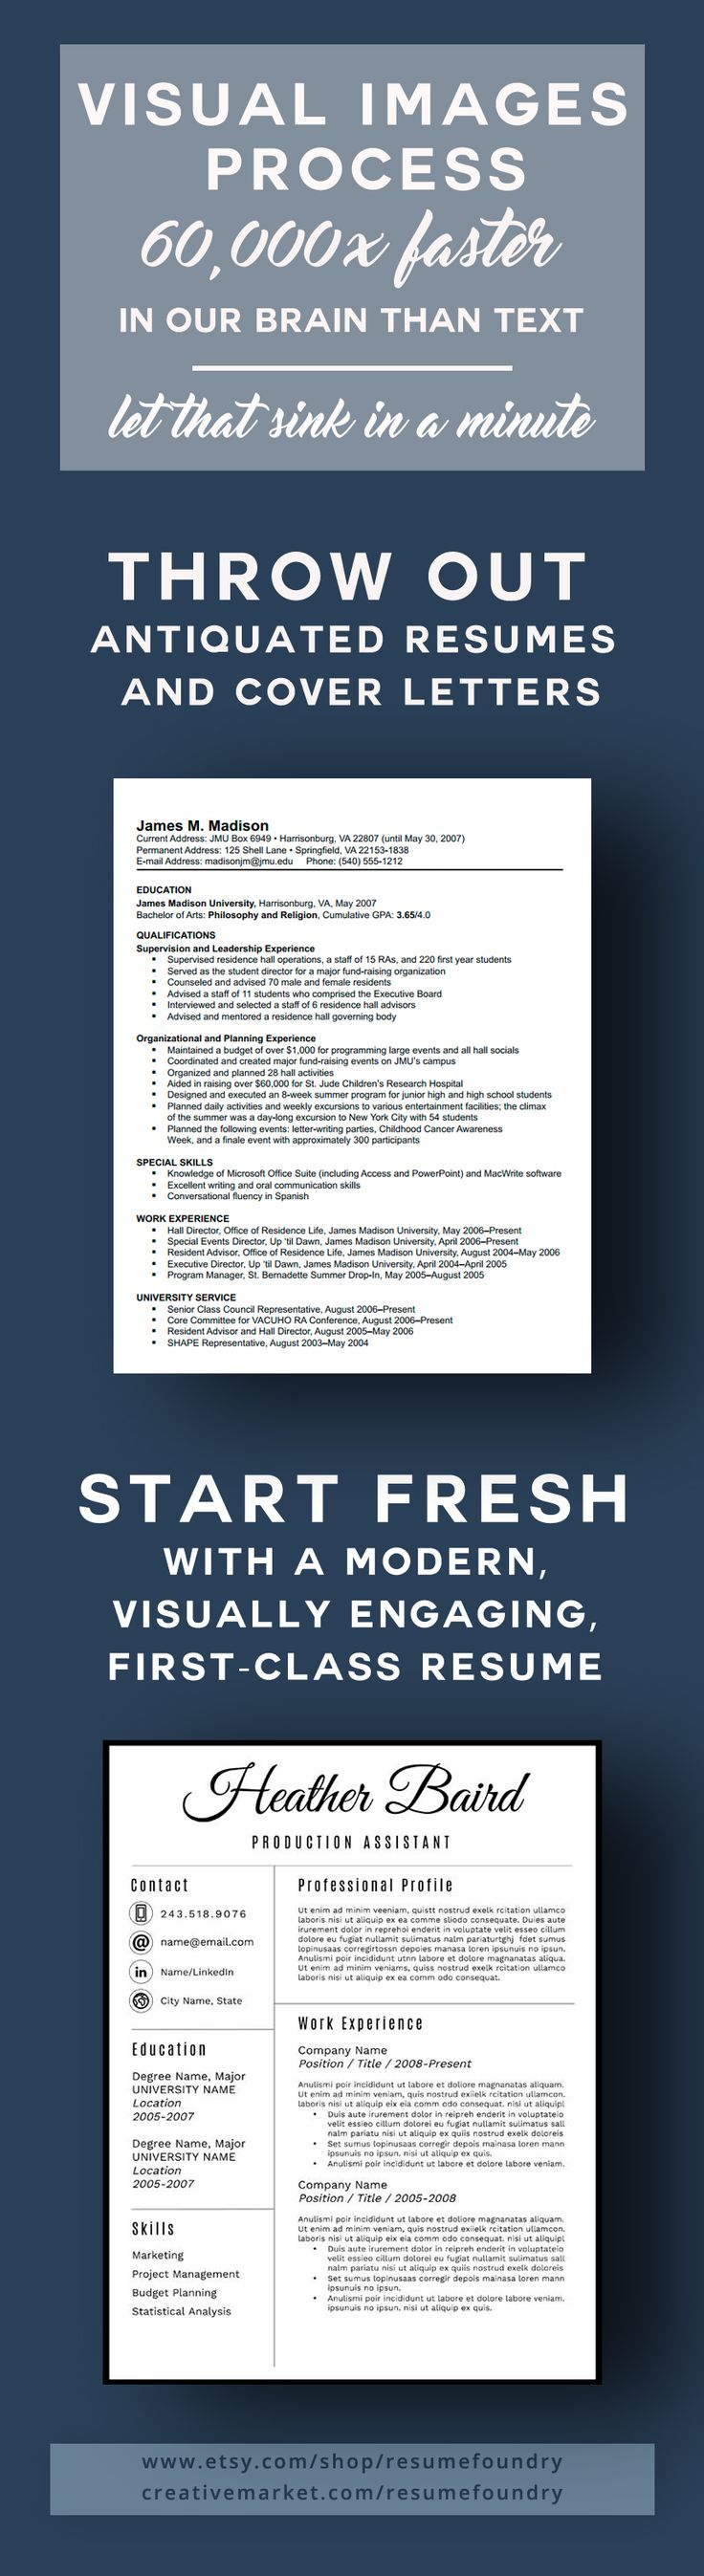 making a resume for free%0A Take advantage of the fact that visual images process faster than text   make your resume visually engaging